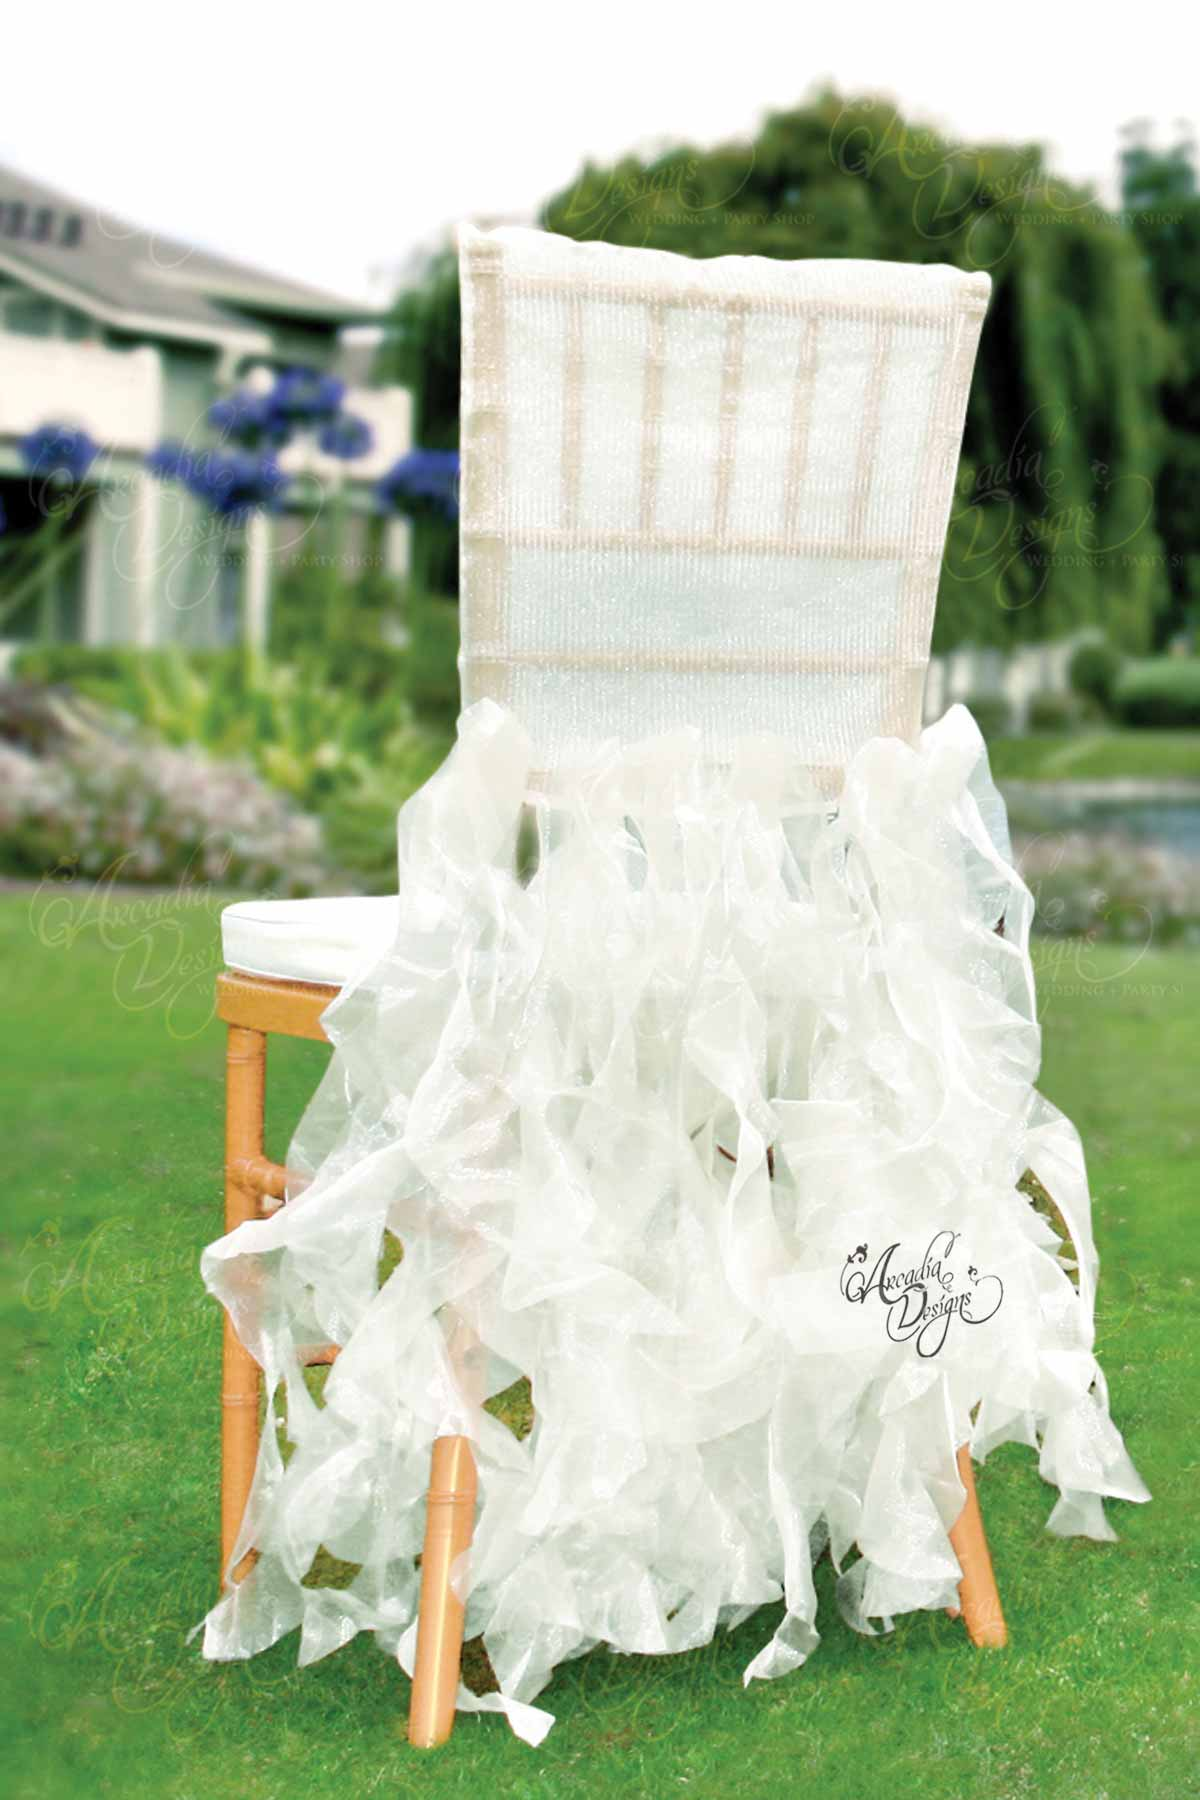 Arcadia Designs Blush White Ruffled Bridal Chair Cover